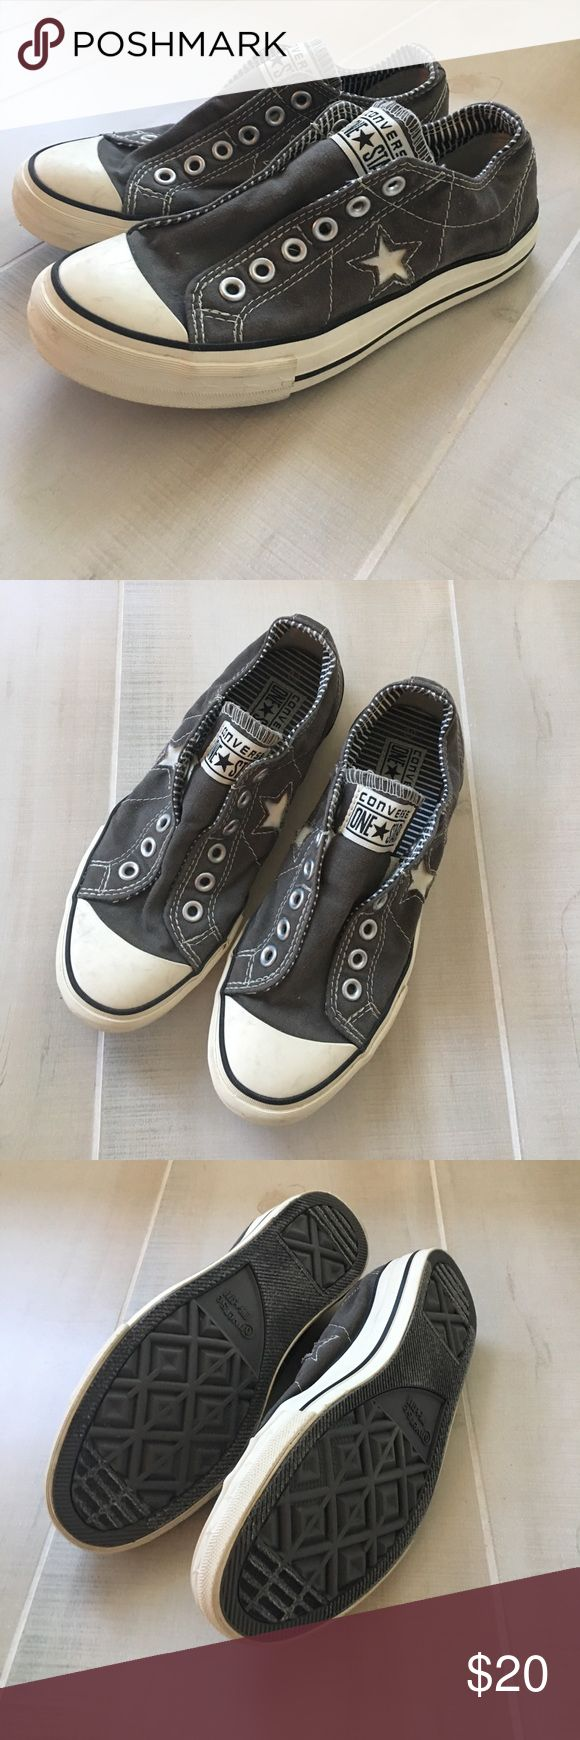 Converse Slip Ons 7.5 Converse Slip in with elastic. Style is not supposed to have laces. Brand new never worn. Converse Shoes Sneakers